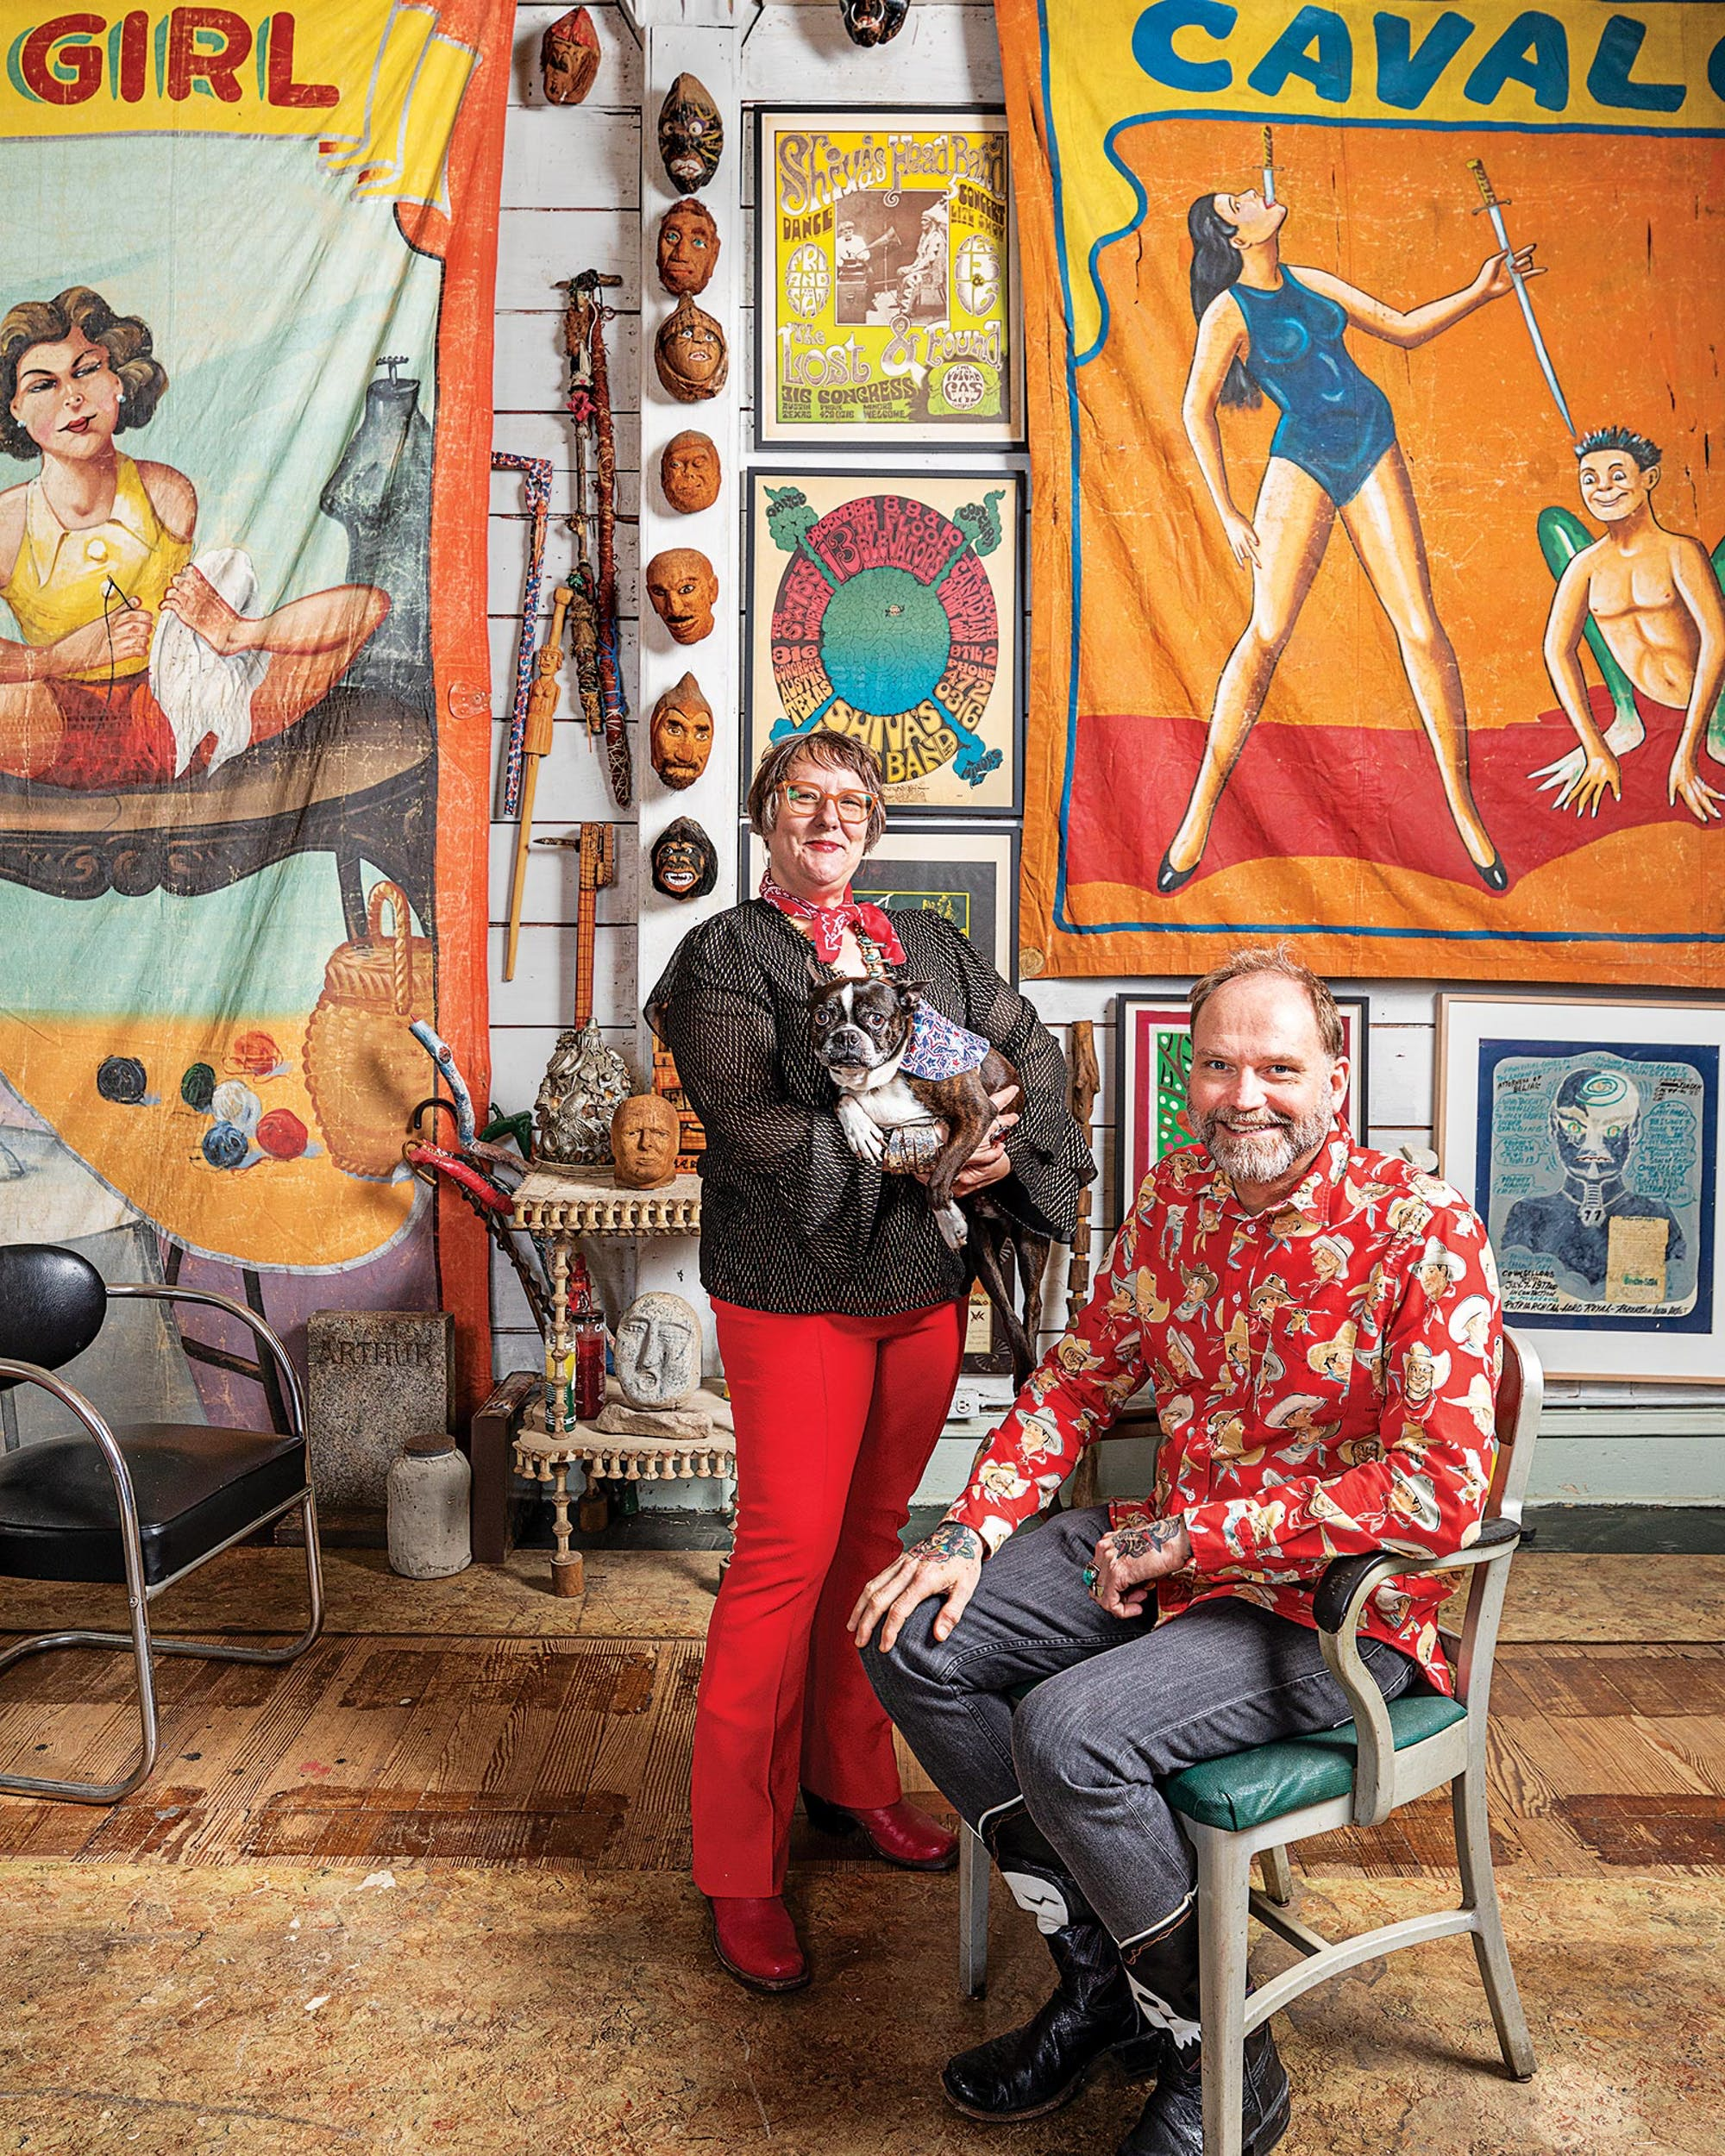 ulie and Bruce Lee Webb w/ dog - Photo by Jeff Wilson (Texas Monthly Magazine)